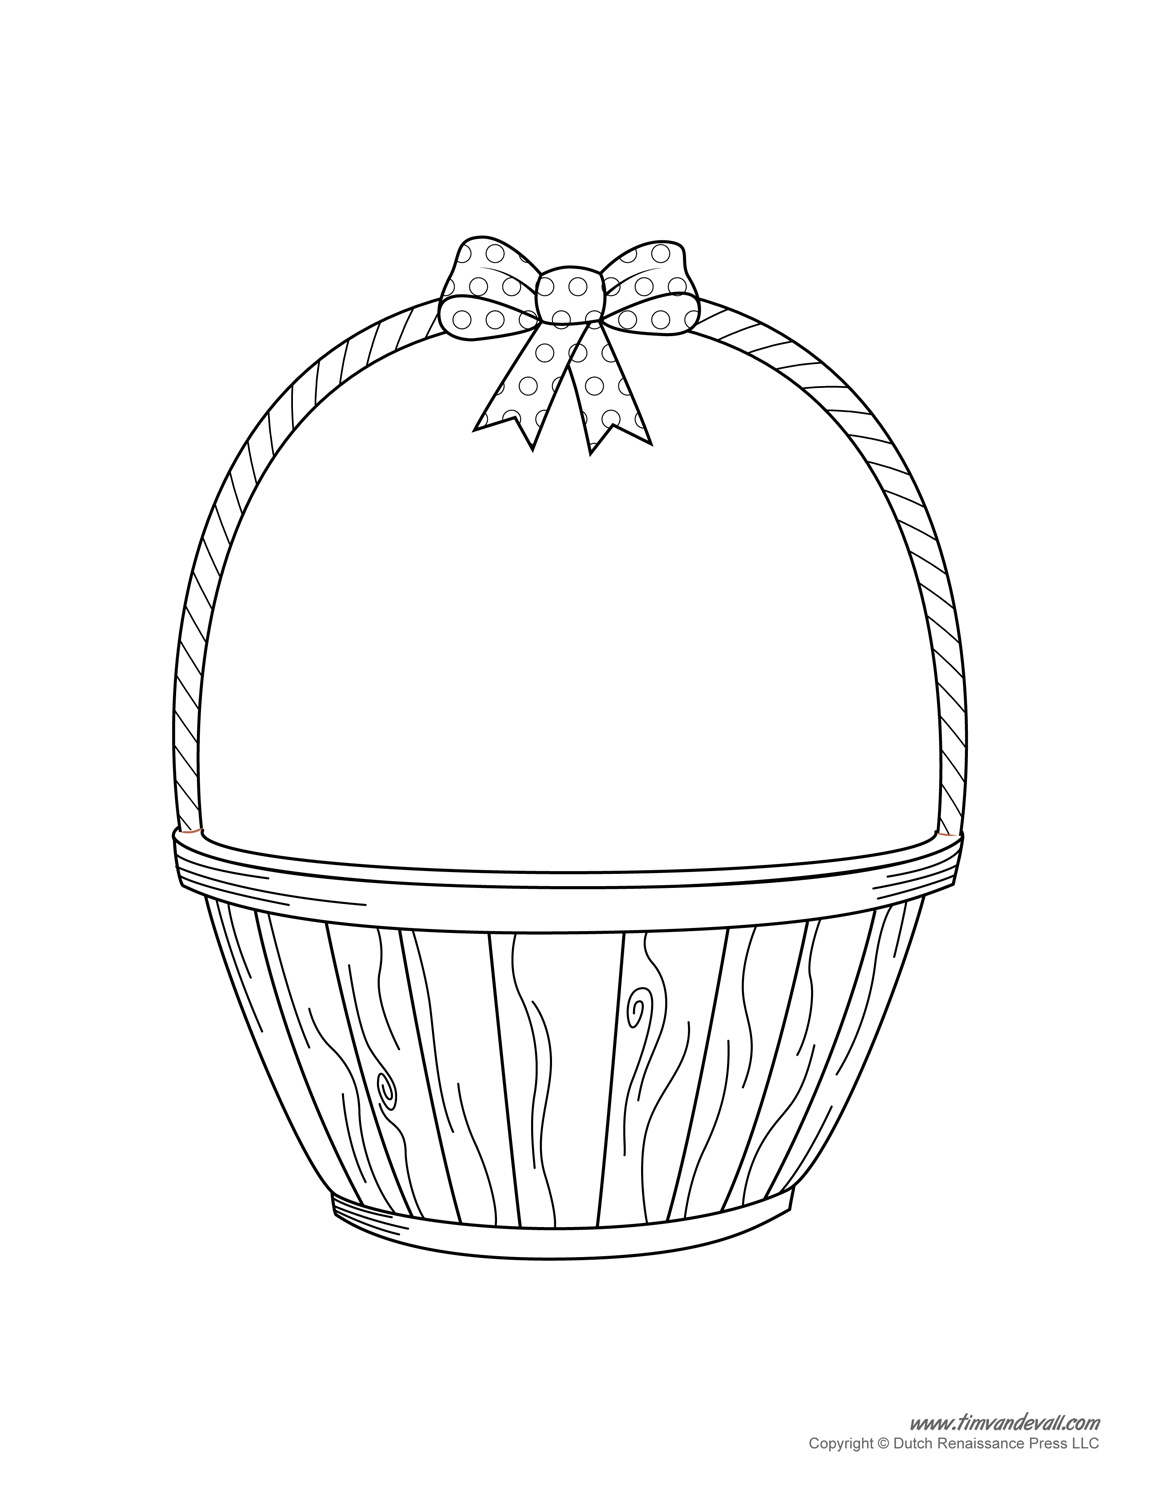 Free Basket Black And White Clipart, Download Free Clip Art.